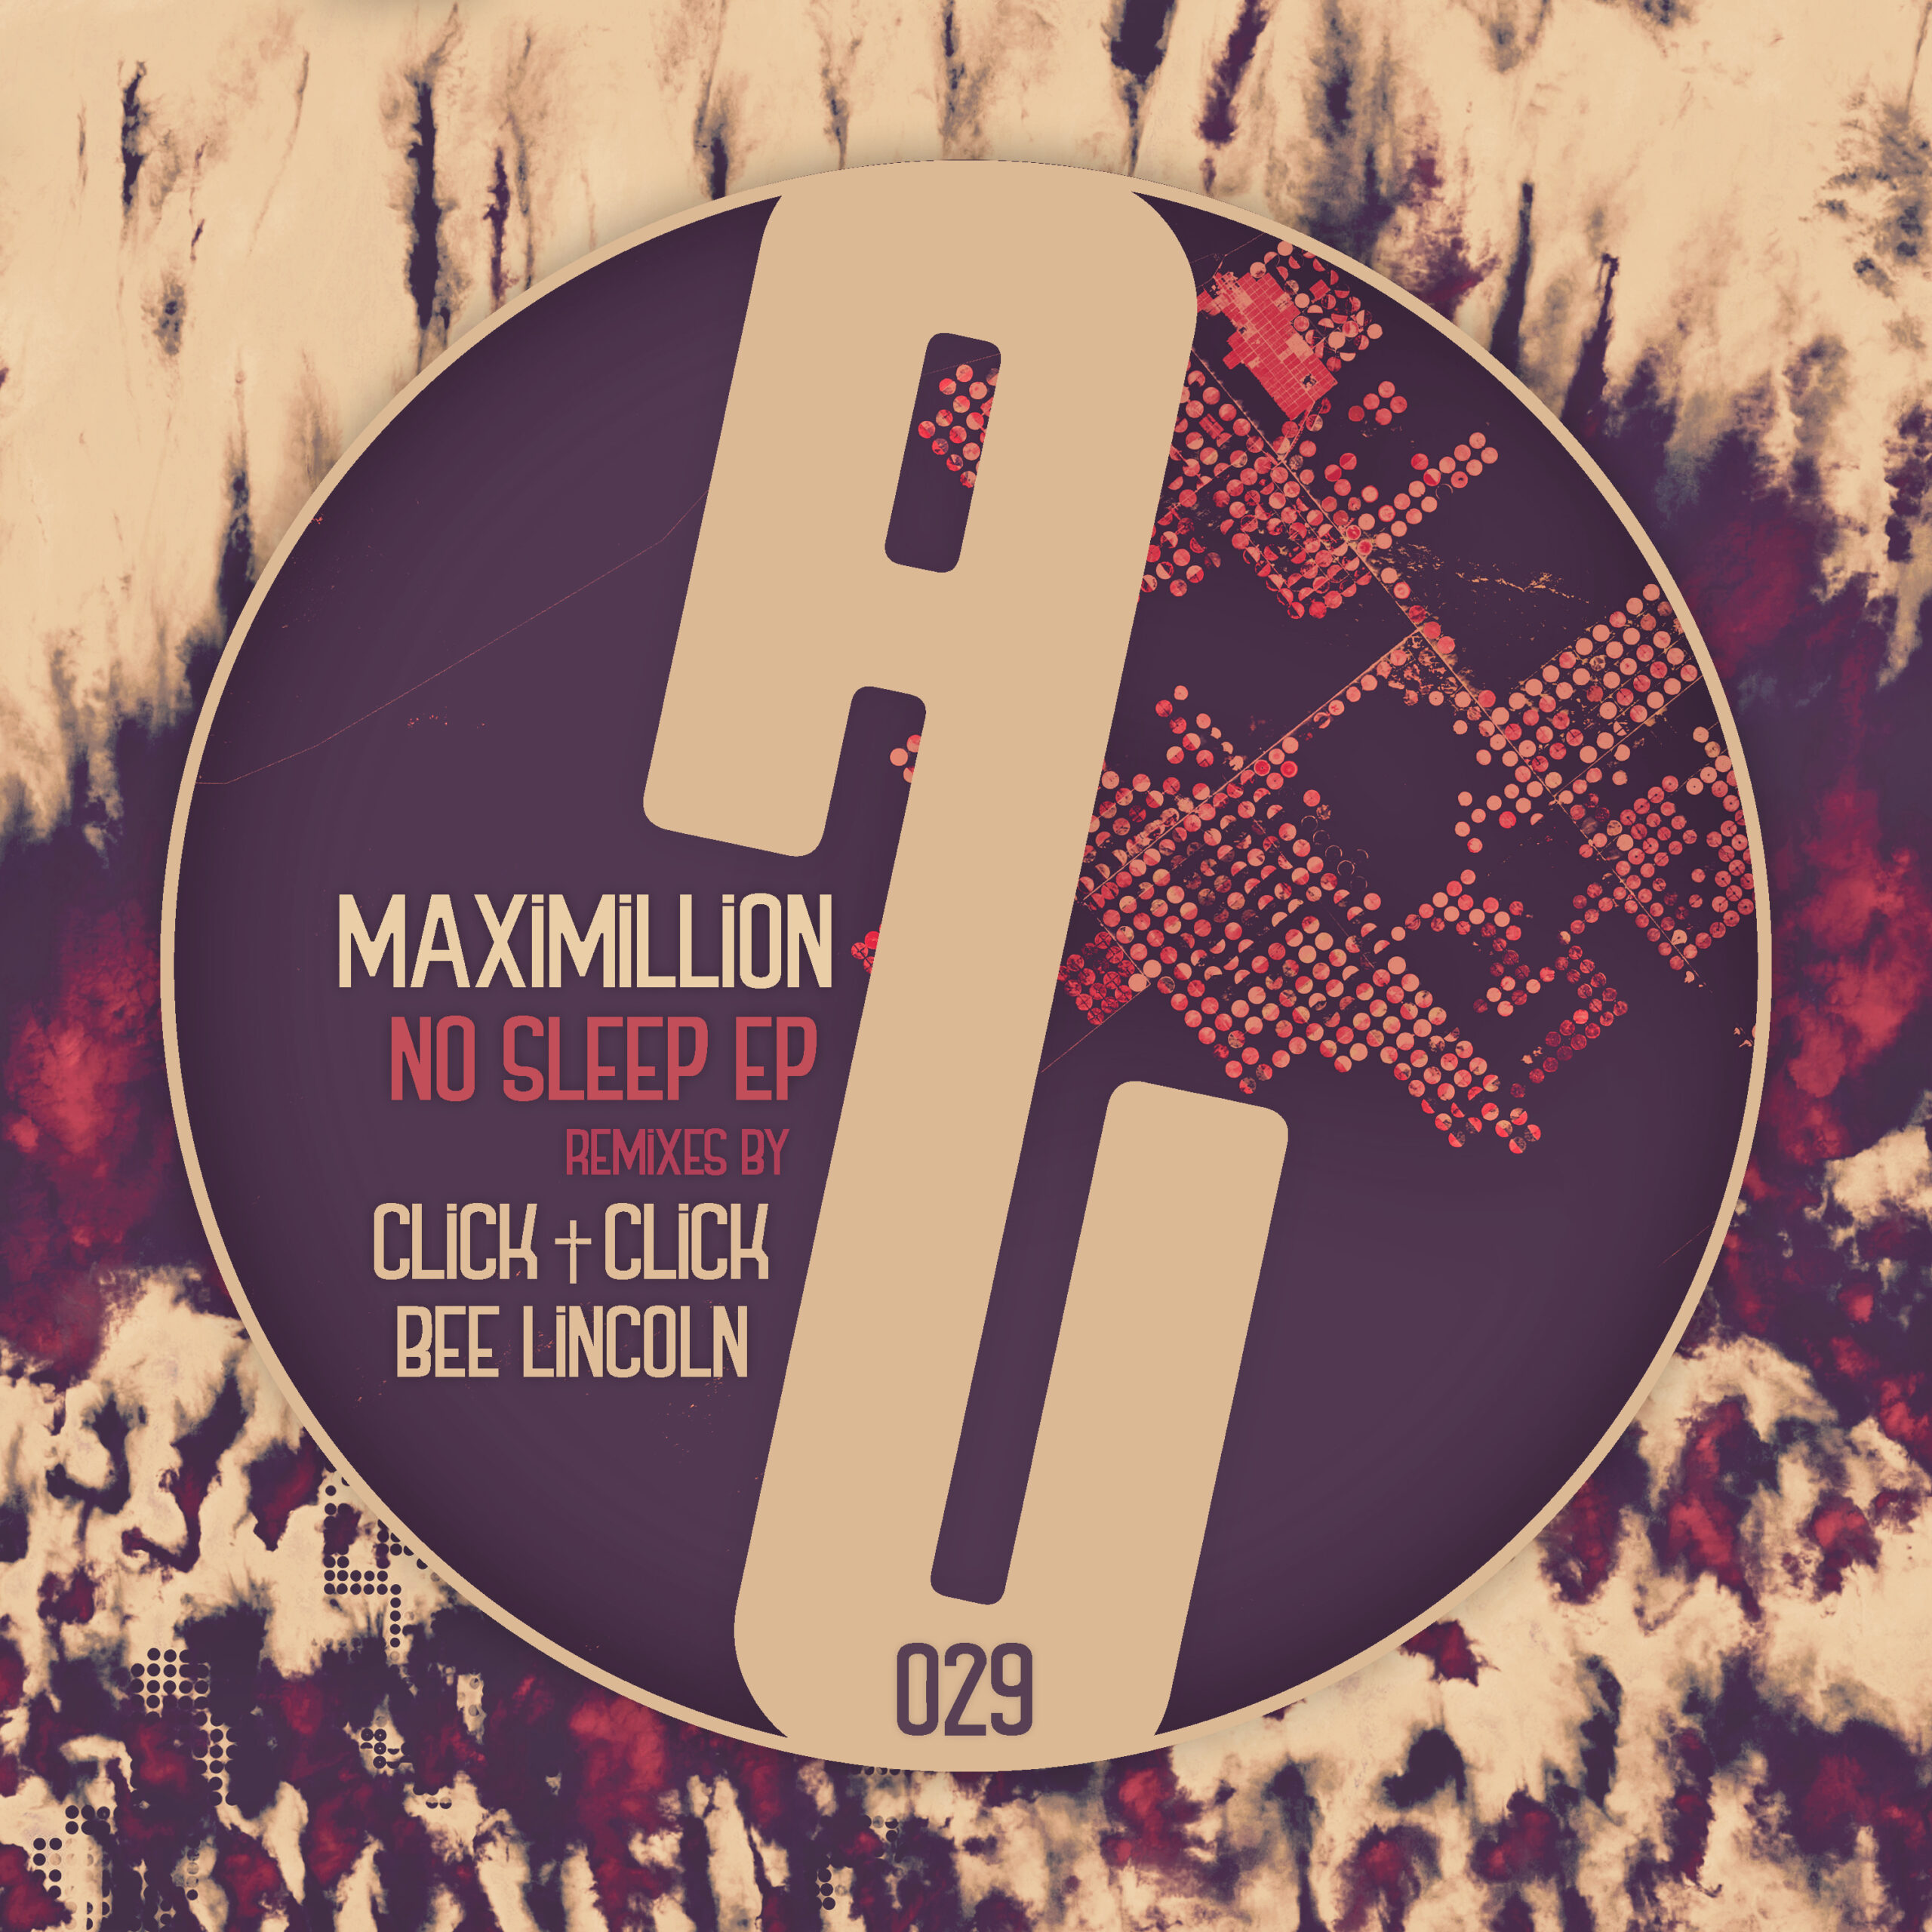 PREMIERE: Maximillion - No Sleep (Click Click's Awake Since 95 Mix)[as usual.music]